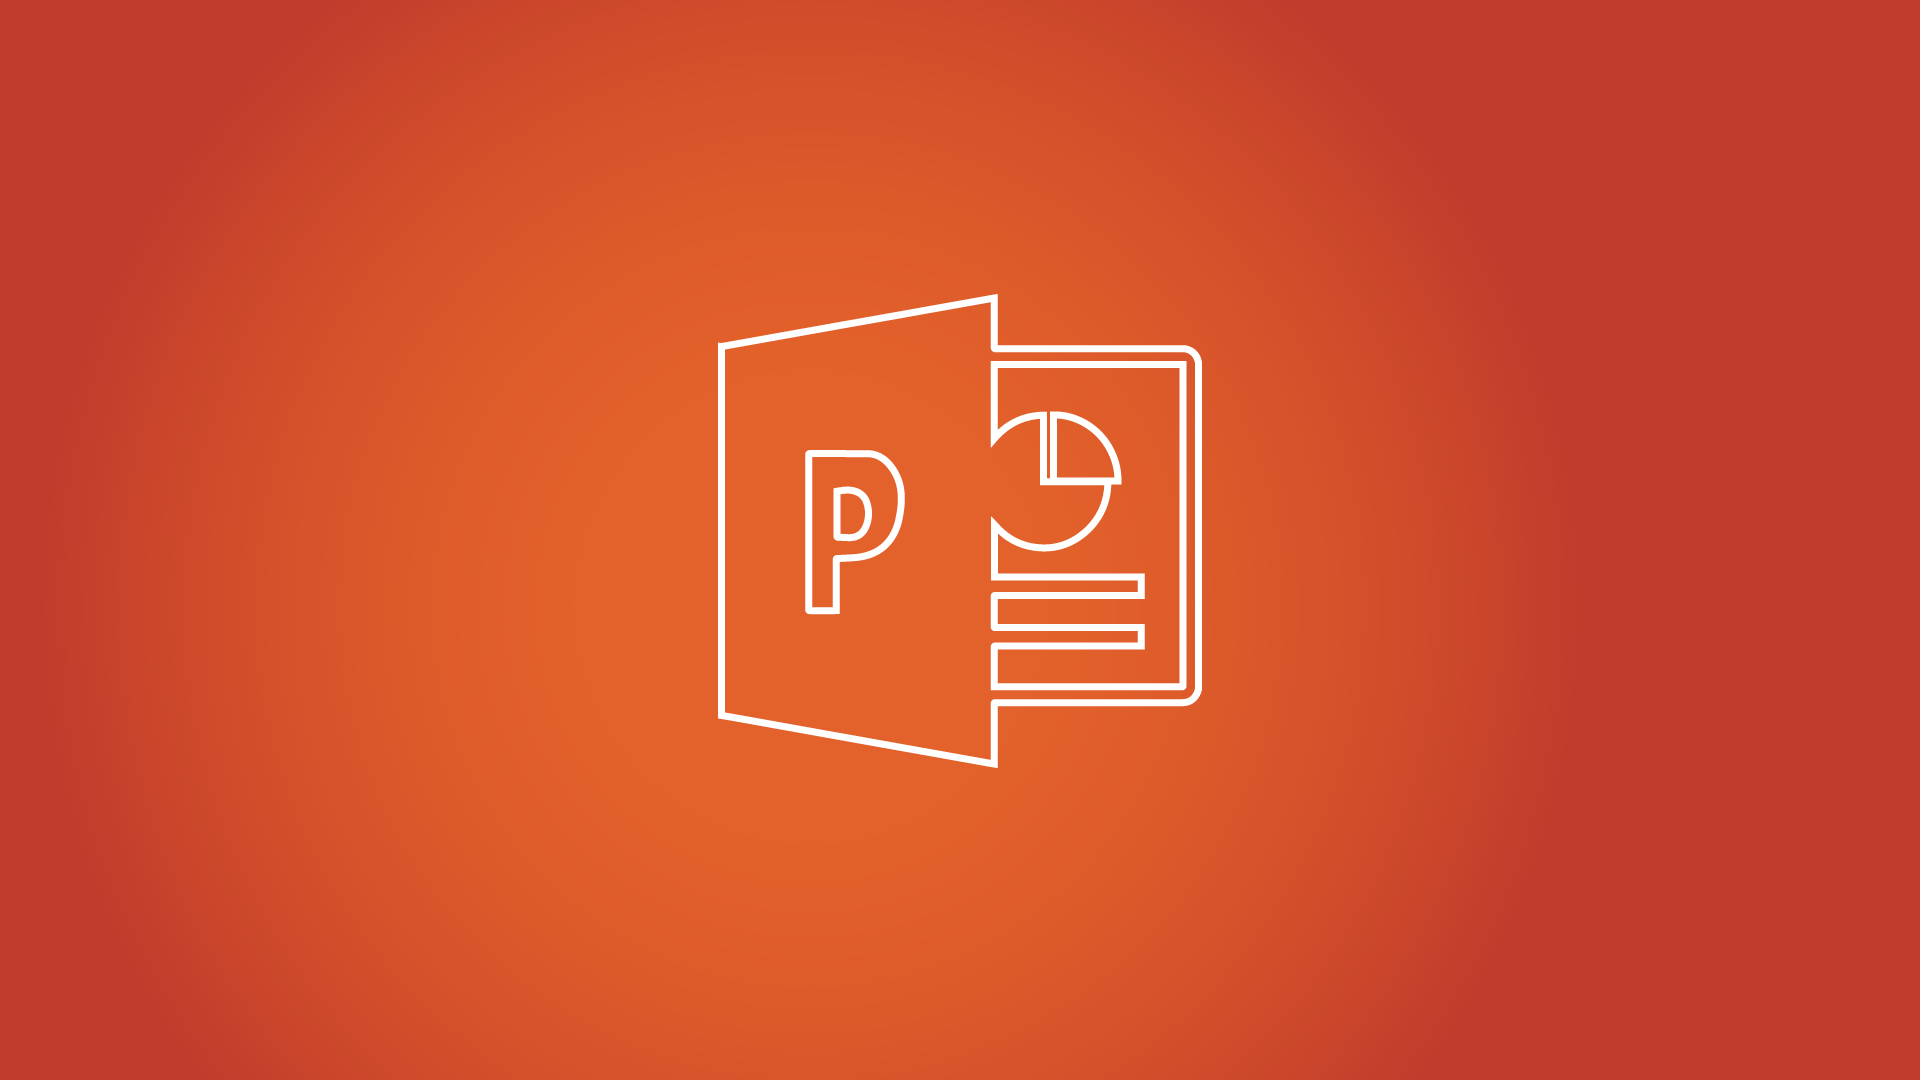 PowerPoint 2016 (Mac)